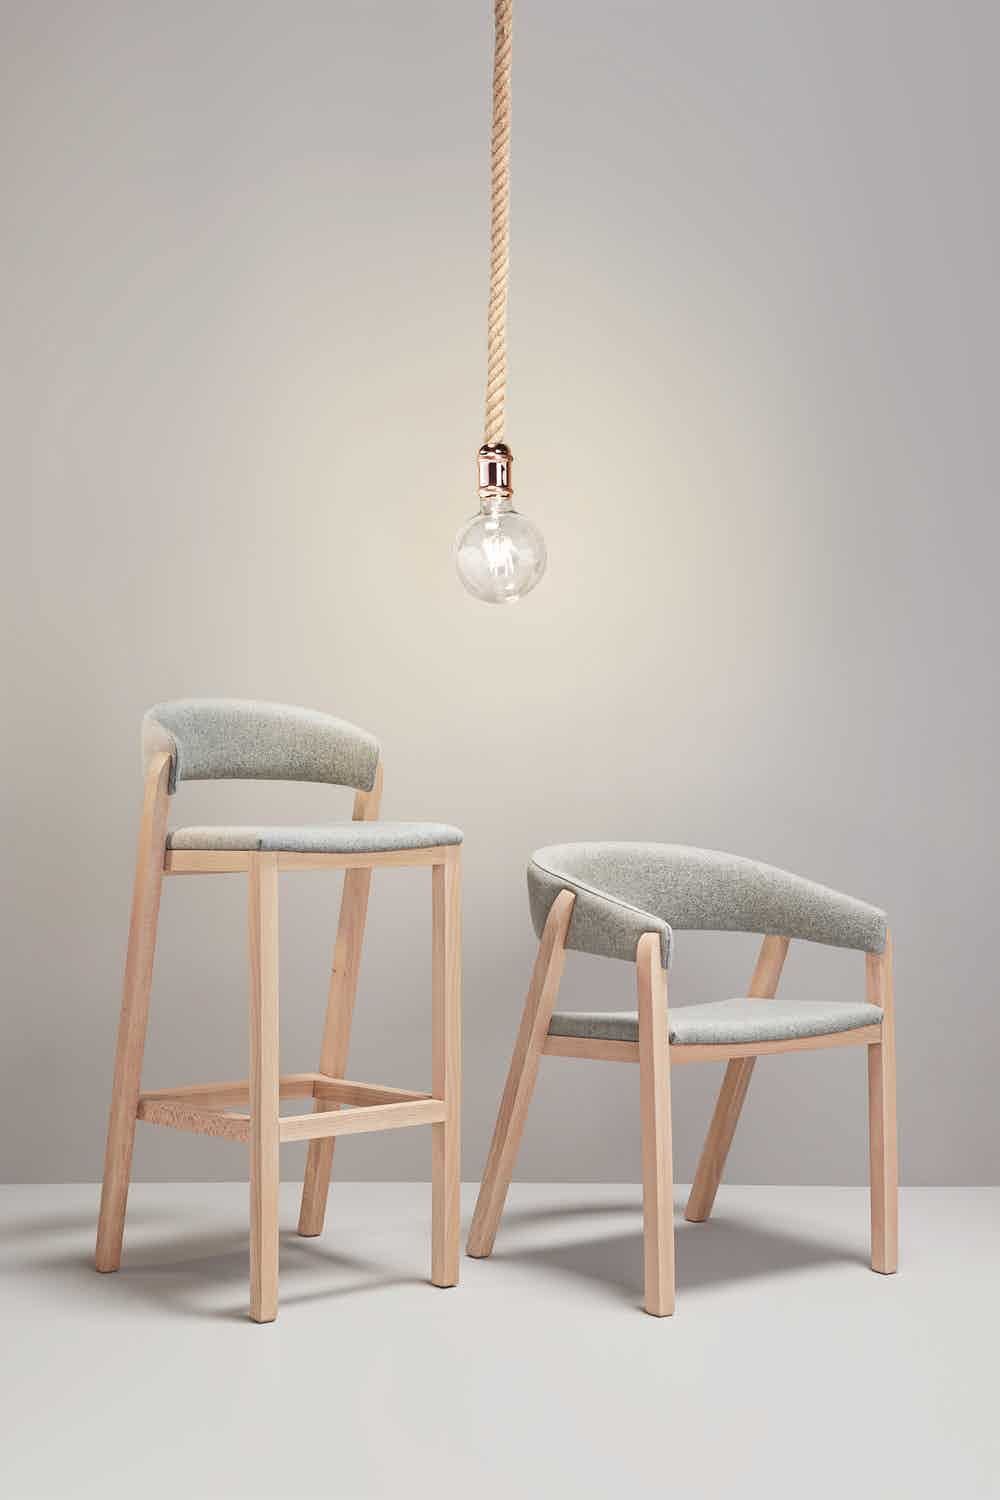 Missana-oslo-barstool-with-chair-insitu-haute-living